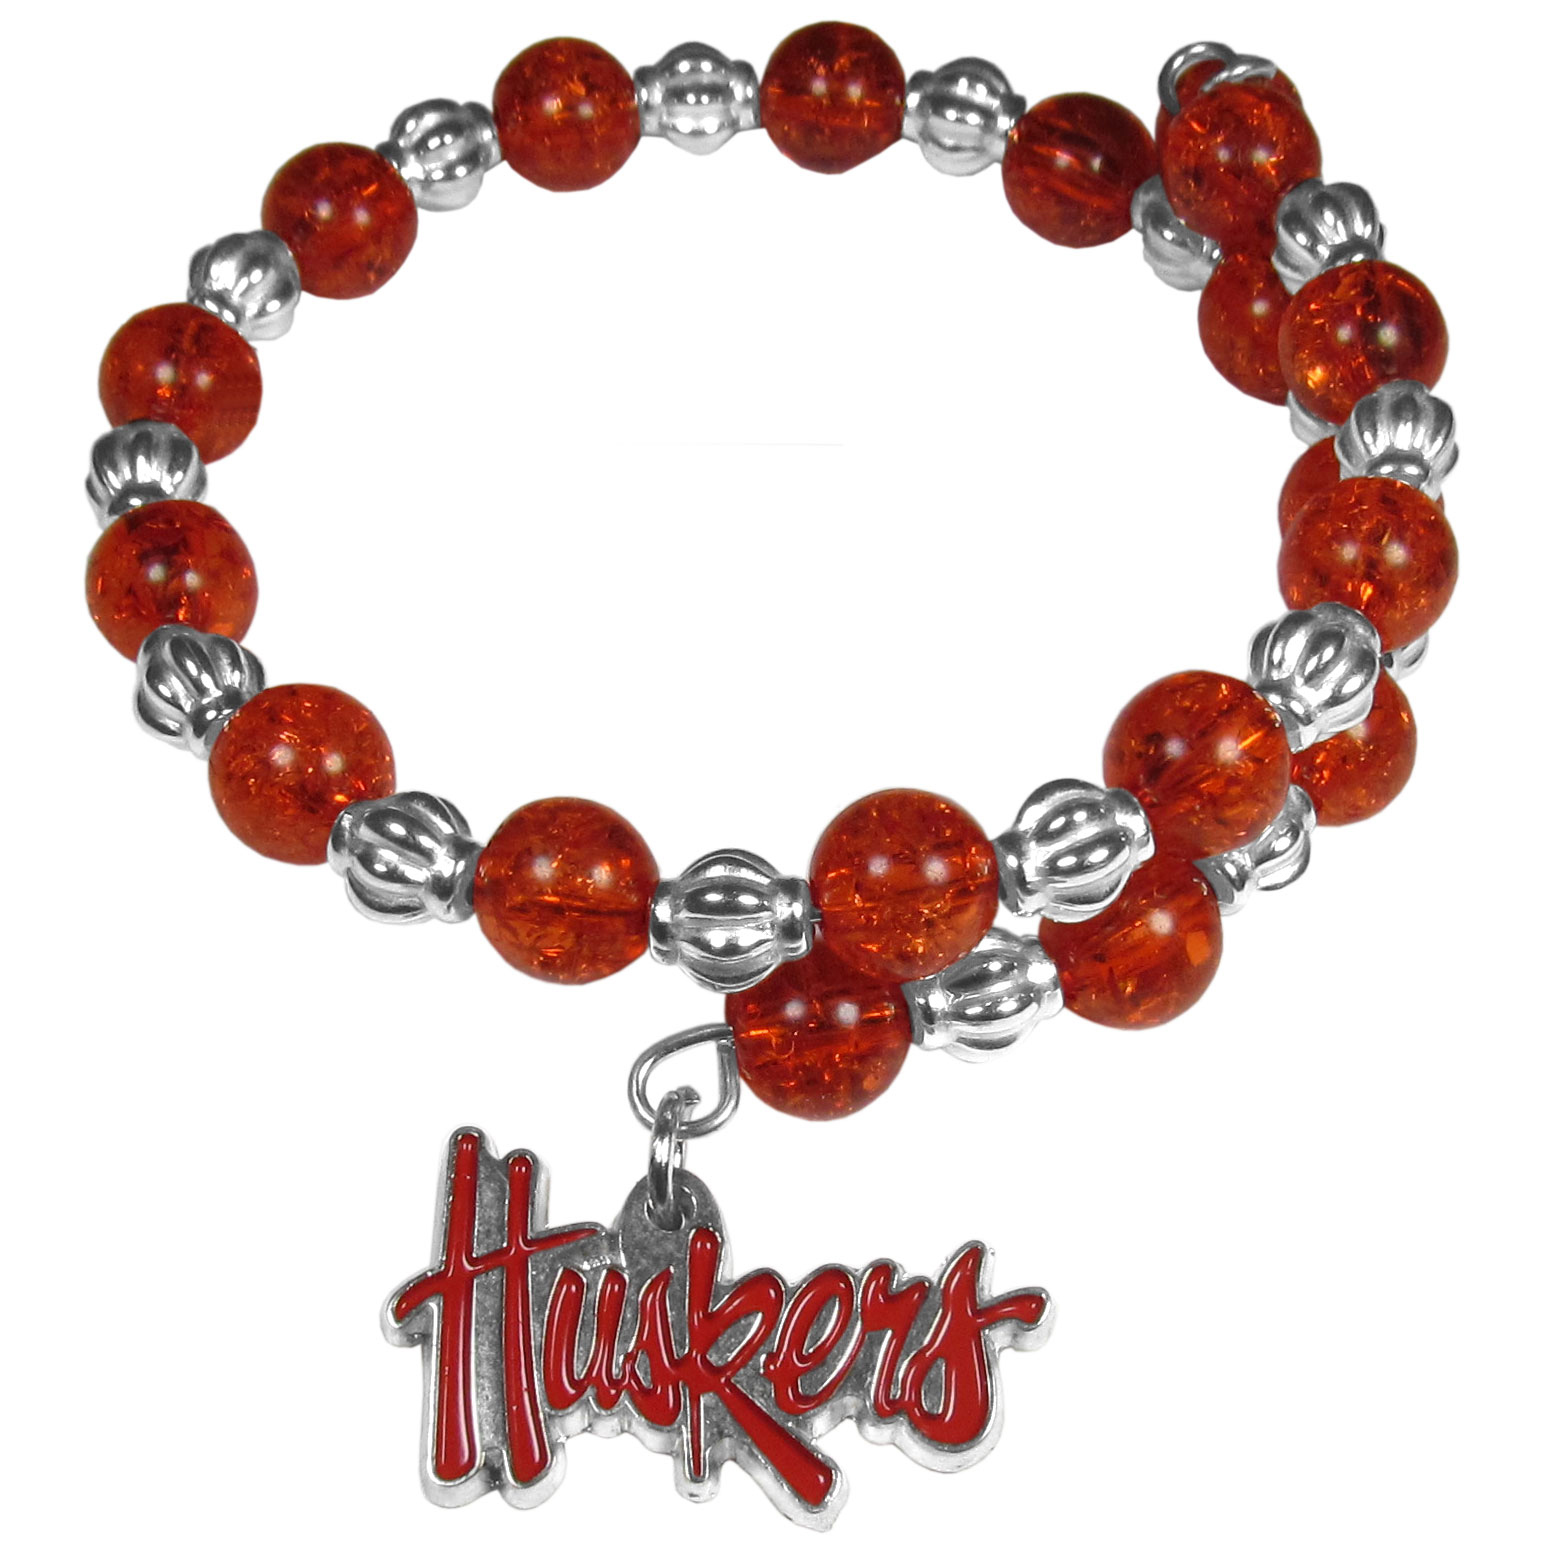 Nebraska Cornhuskers Bead Memory Wire Bracelet - Our Nebraska Cornhuskers memory wire bead bracelet is trendy way to show off your love of the game. The double wrap bracelet is completely covered in 7.5 mm crystals that are broken up with silvertoned beads creating a designer look with a sporty twist. The bracelet features a fully cast, metal team charm that has expertly enameled team colors. This fashion jewelry piece is a must-have for the die-hard fan that chic look that can dress up any outfit.